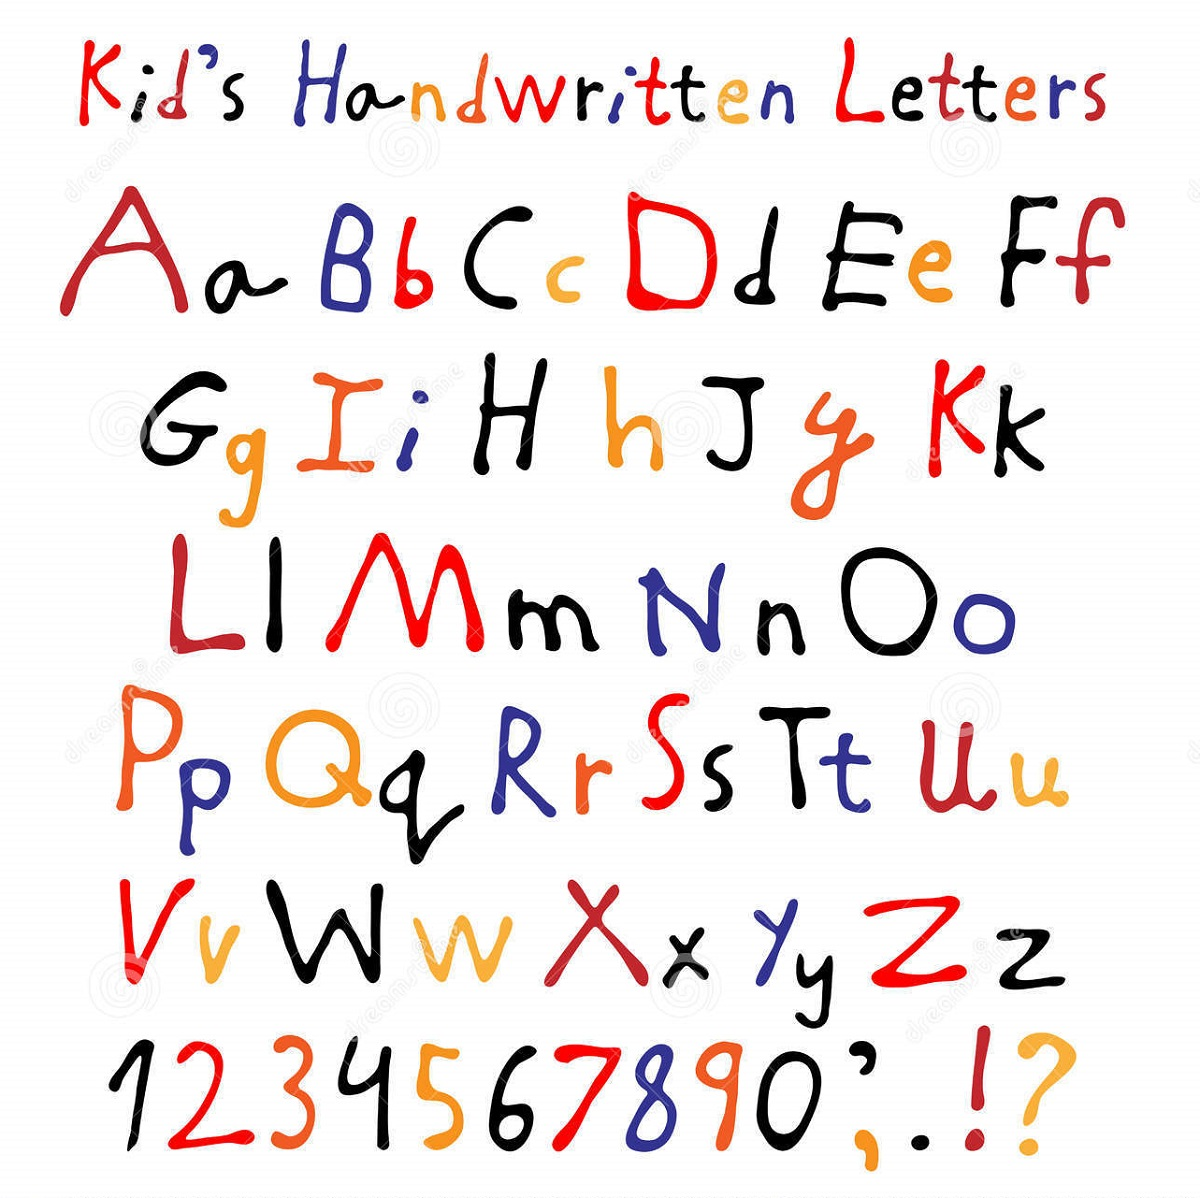 letters-and-numbers-for-kids-handwritten